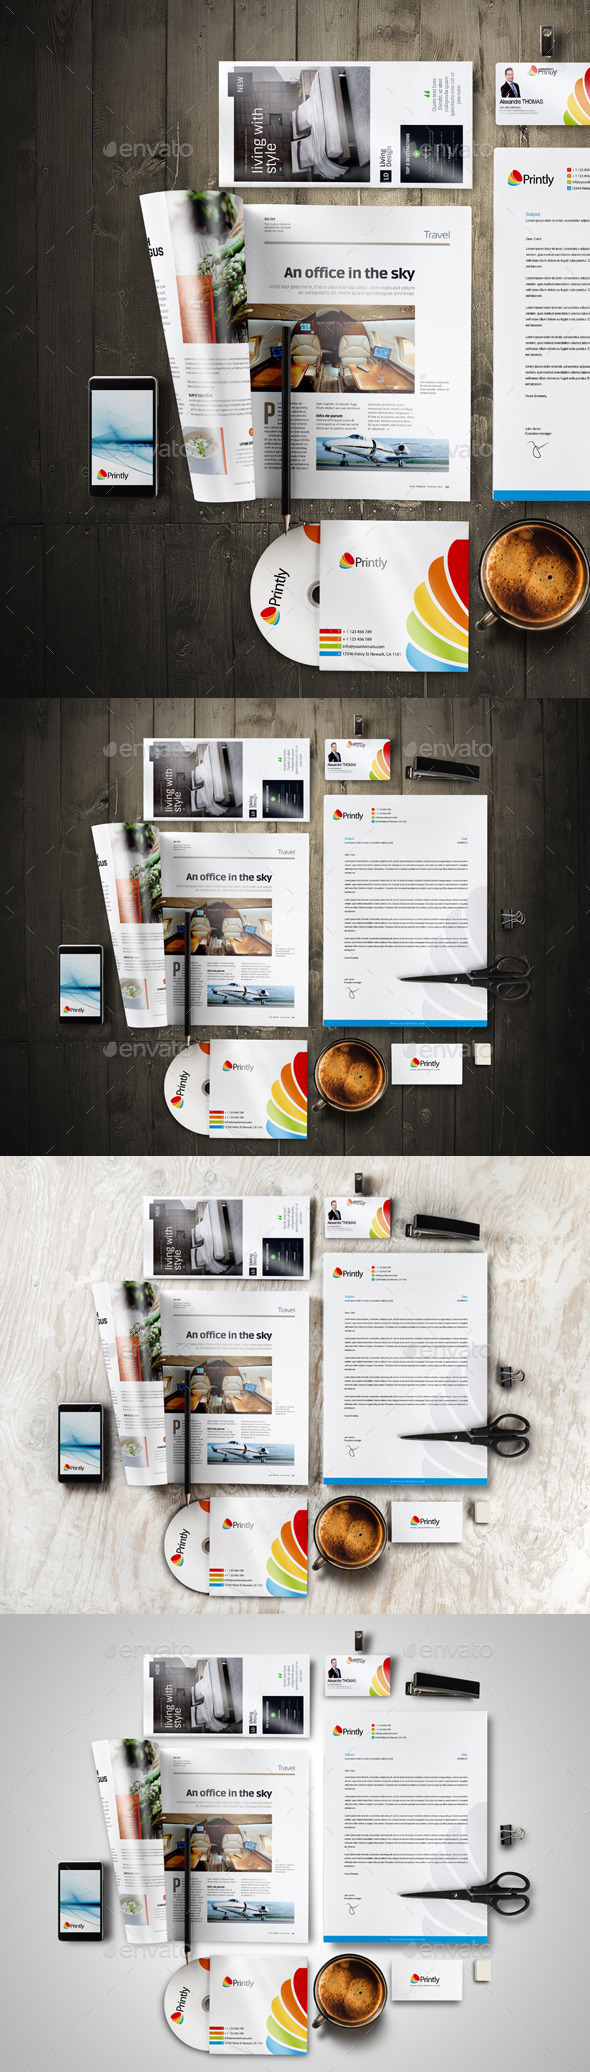 Stationery Mock-up Pack Vol.1 (Stationery)